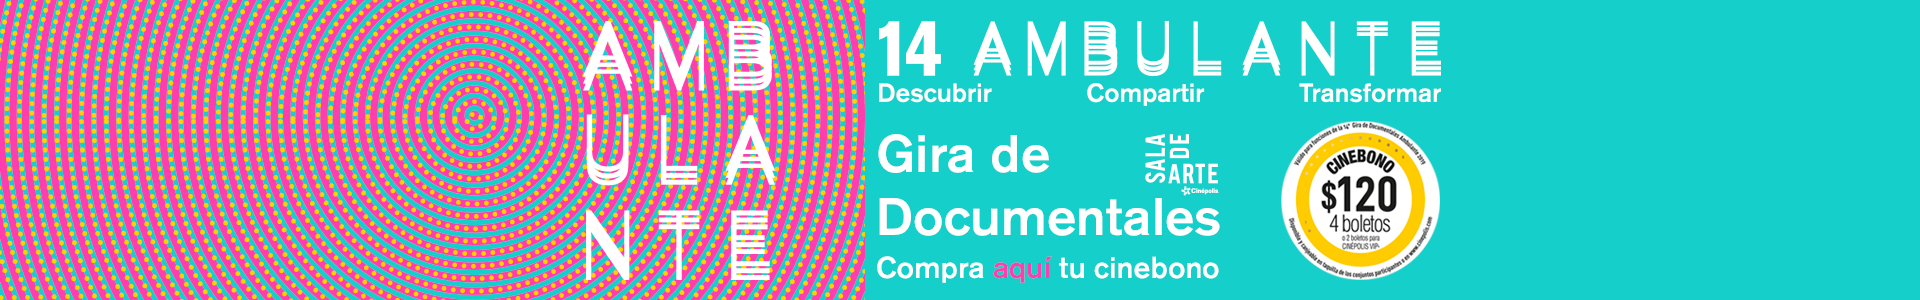 Gira Documentales Ambulante